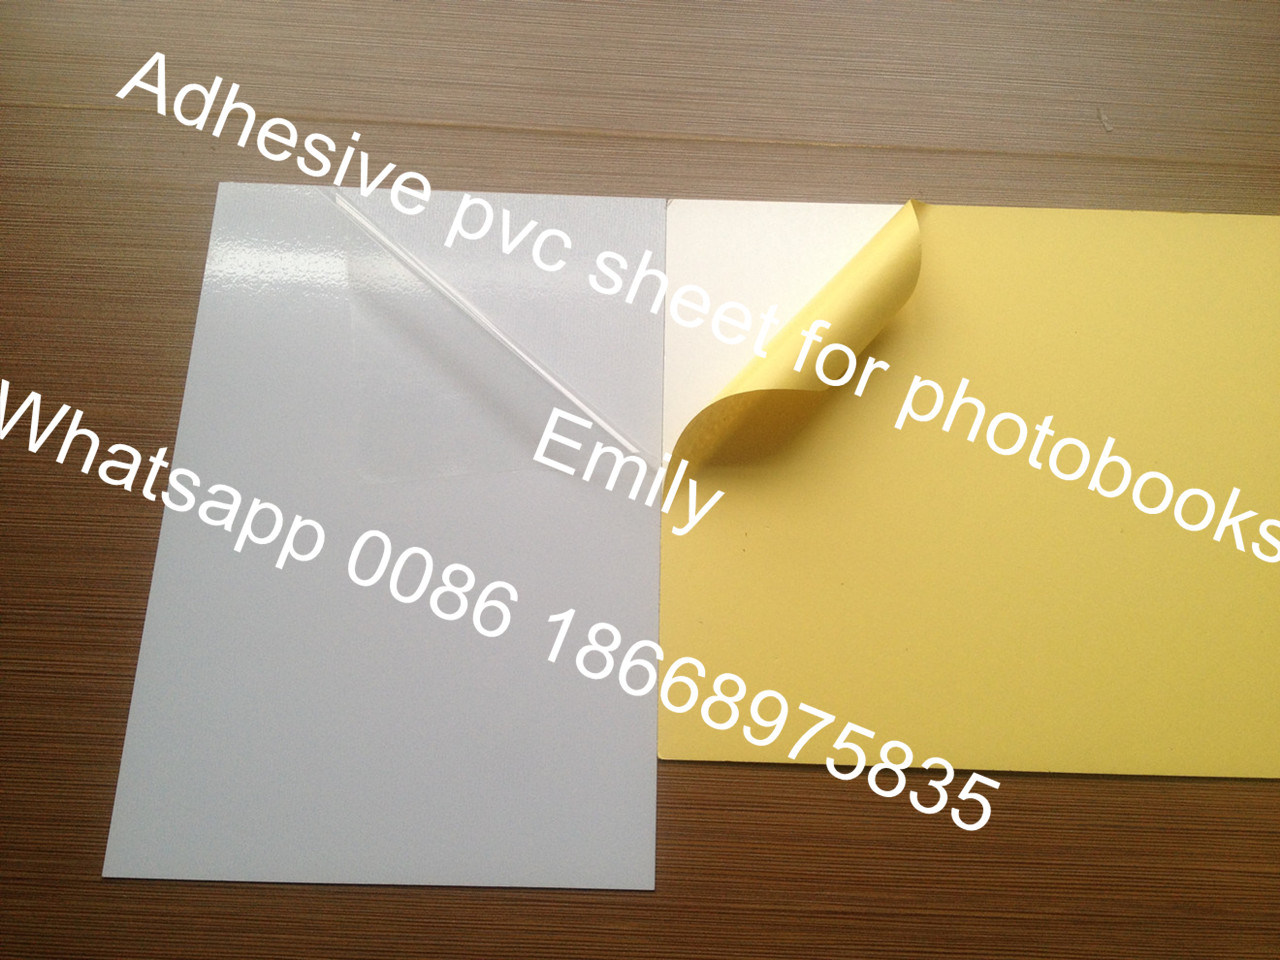 Good Hardness Self-Adhesive PVC Sheet to Make Album